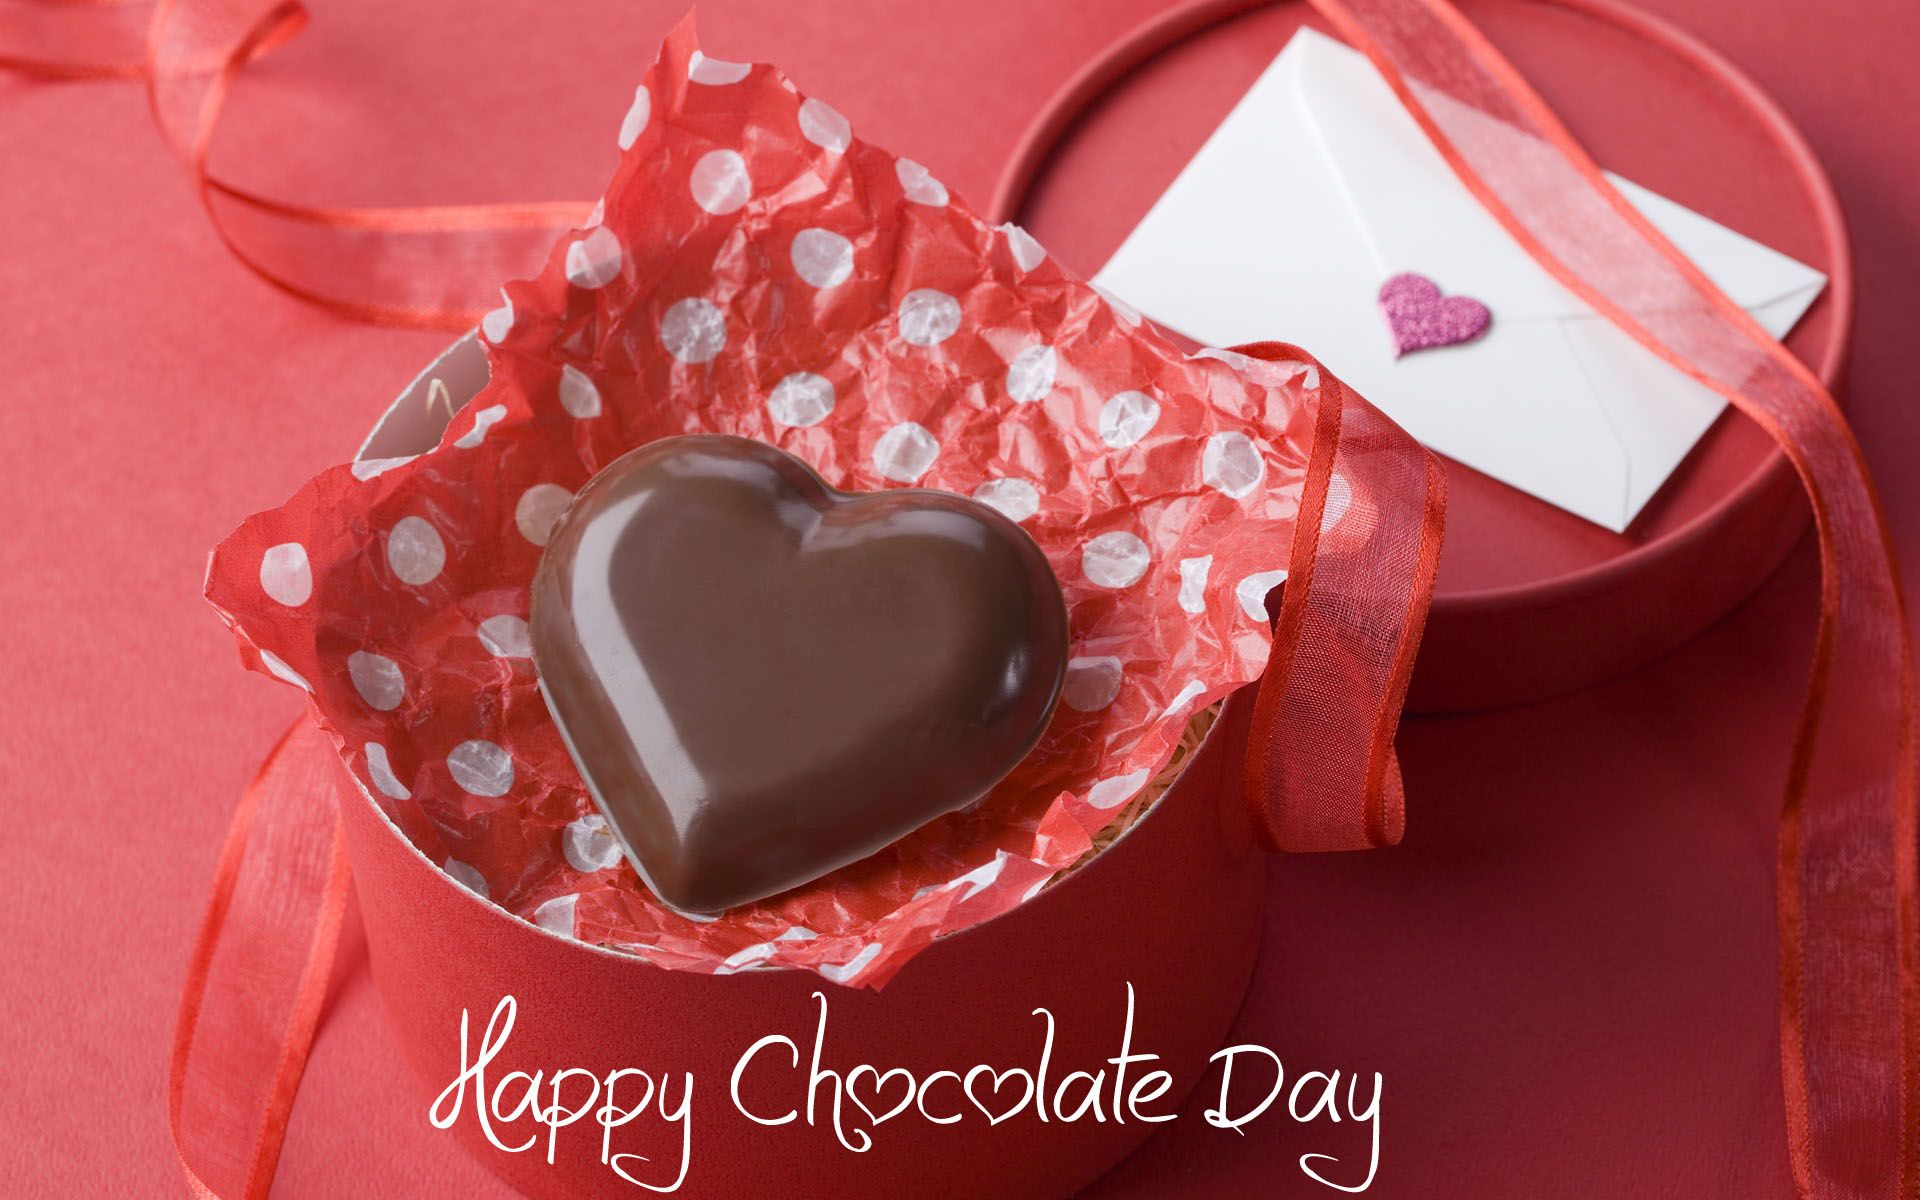 Happy Chocolate Day Wallpaper Chocolate day Happy chocolate day 1920x1200